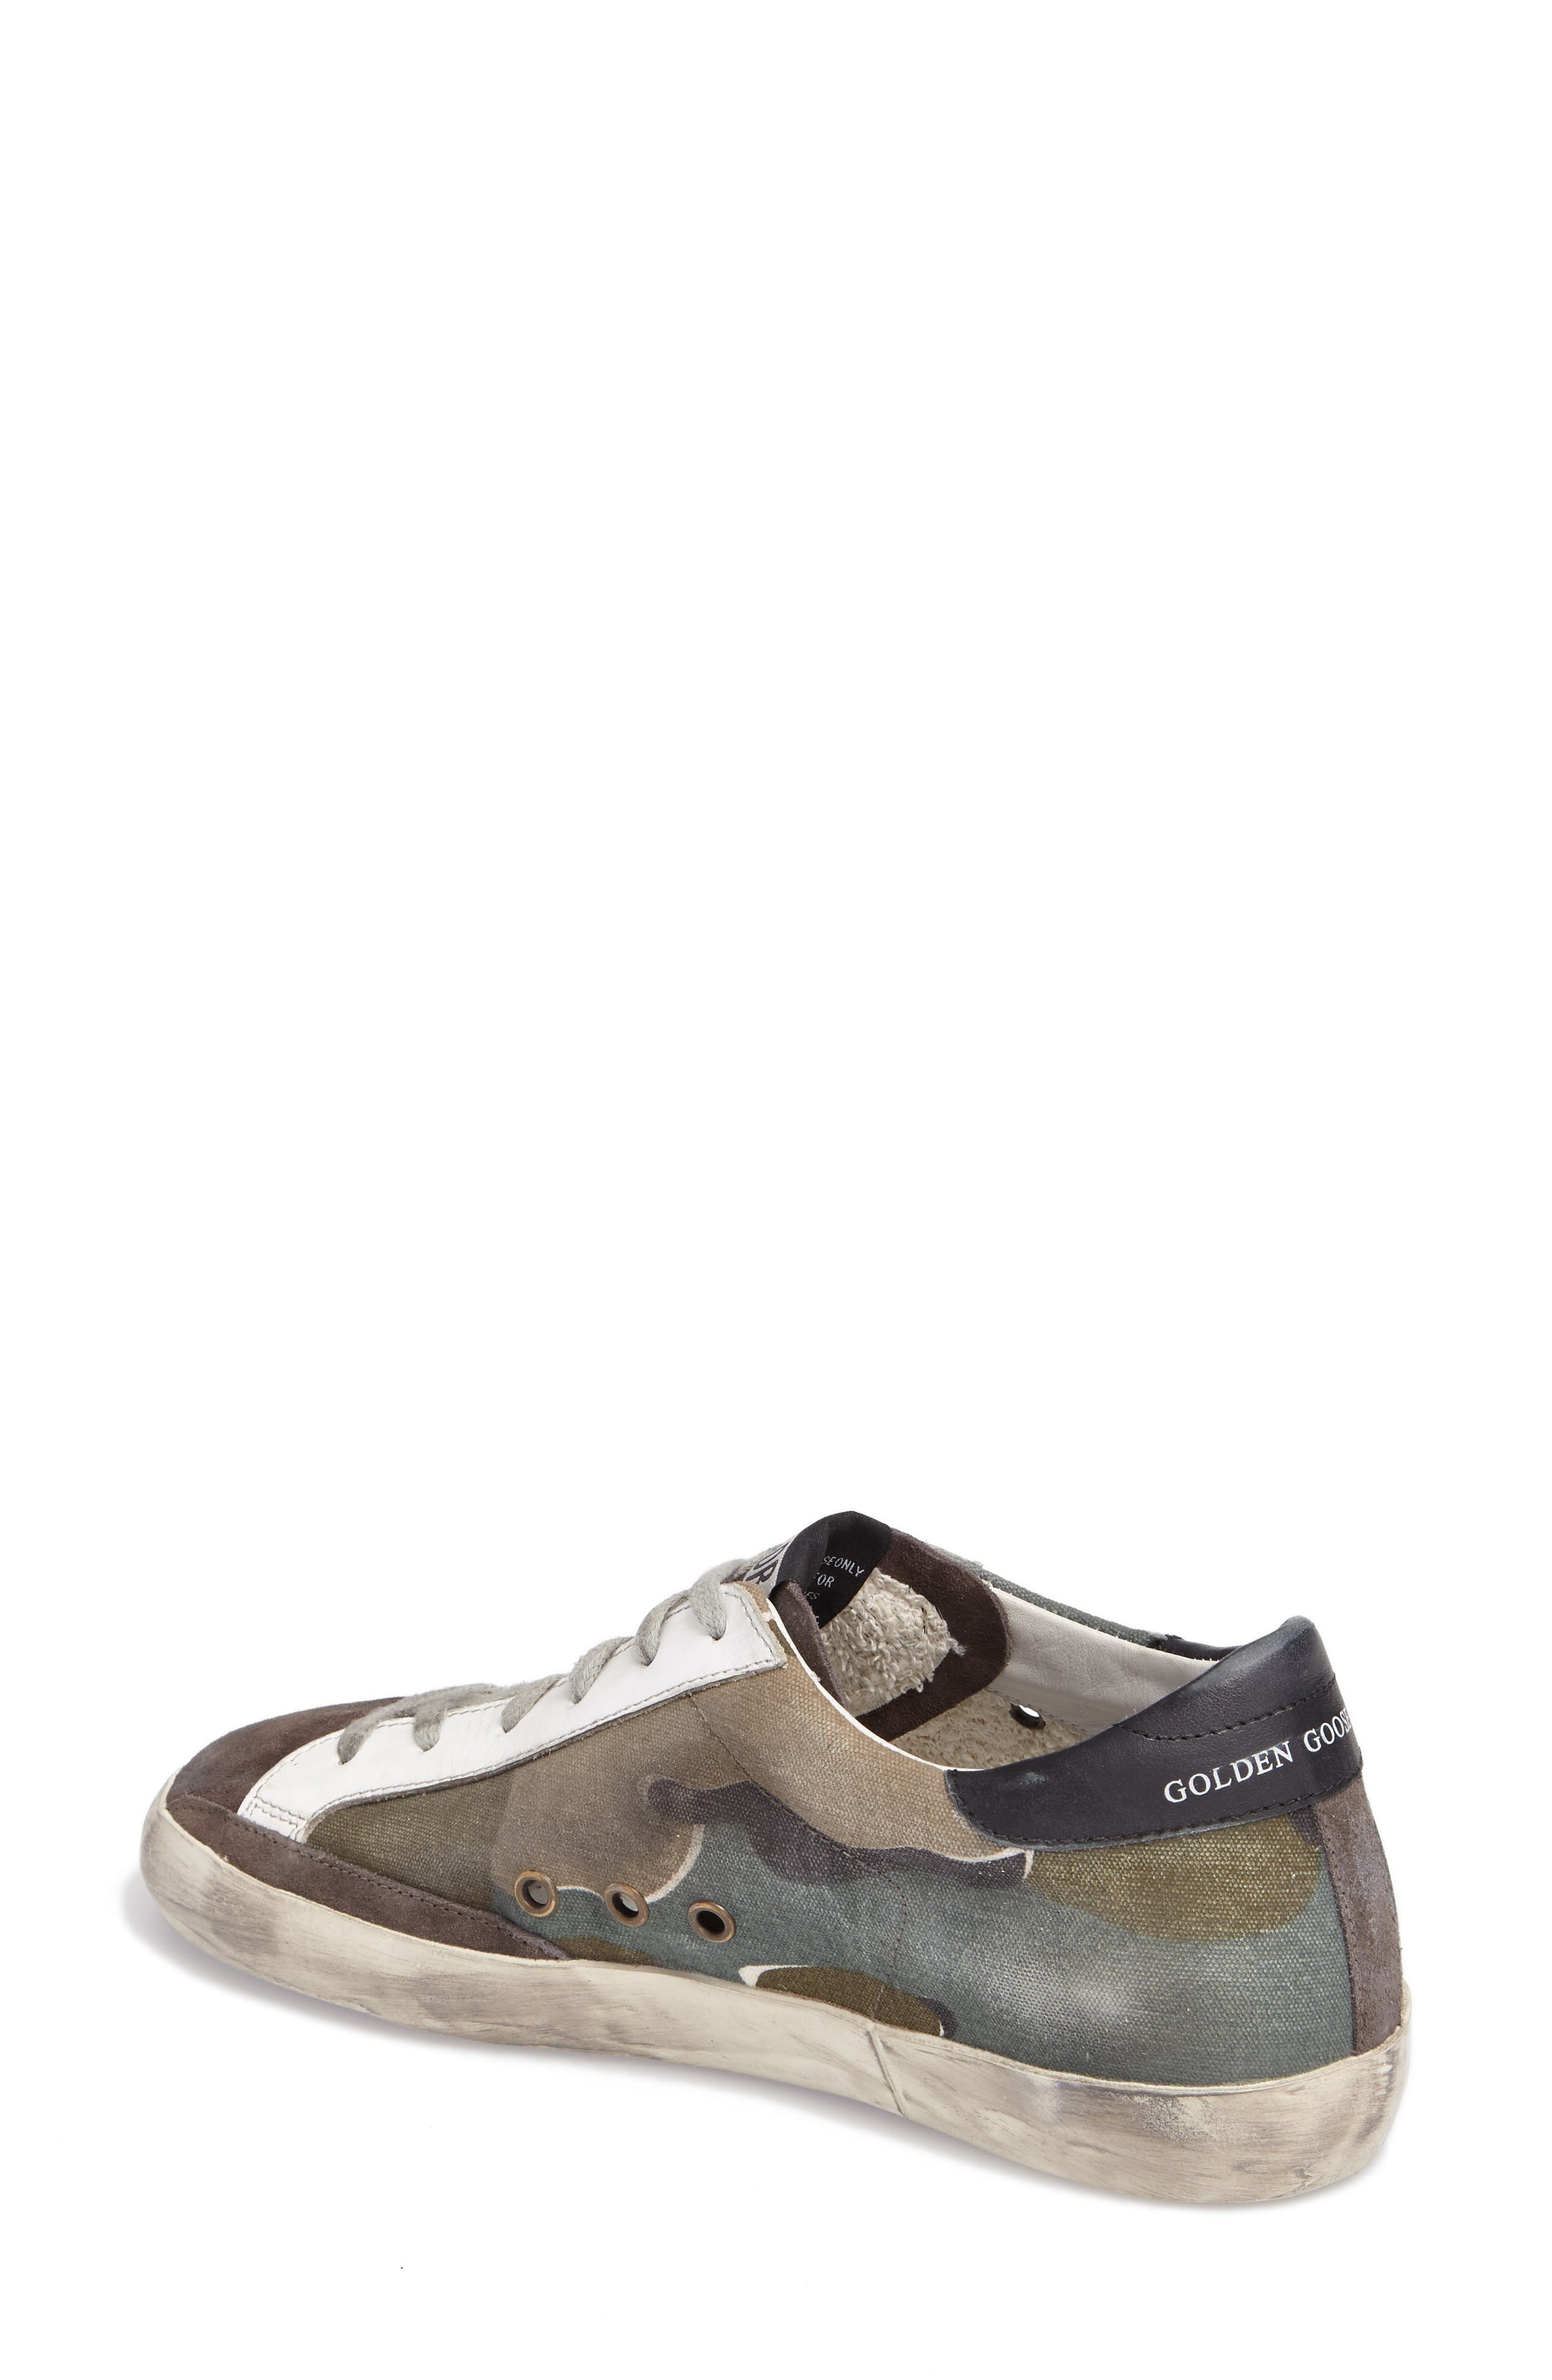 Superstar Low Top Sneaker,                             Alternate thumbnail 2, color,                             Camou Grey